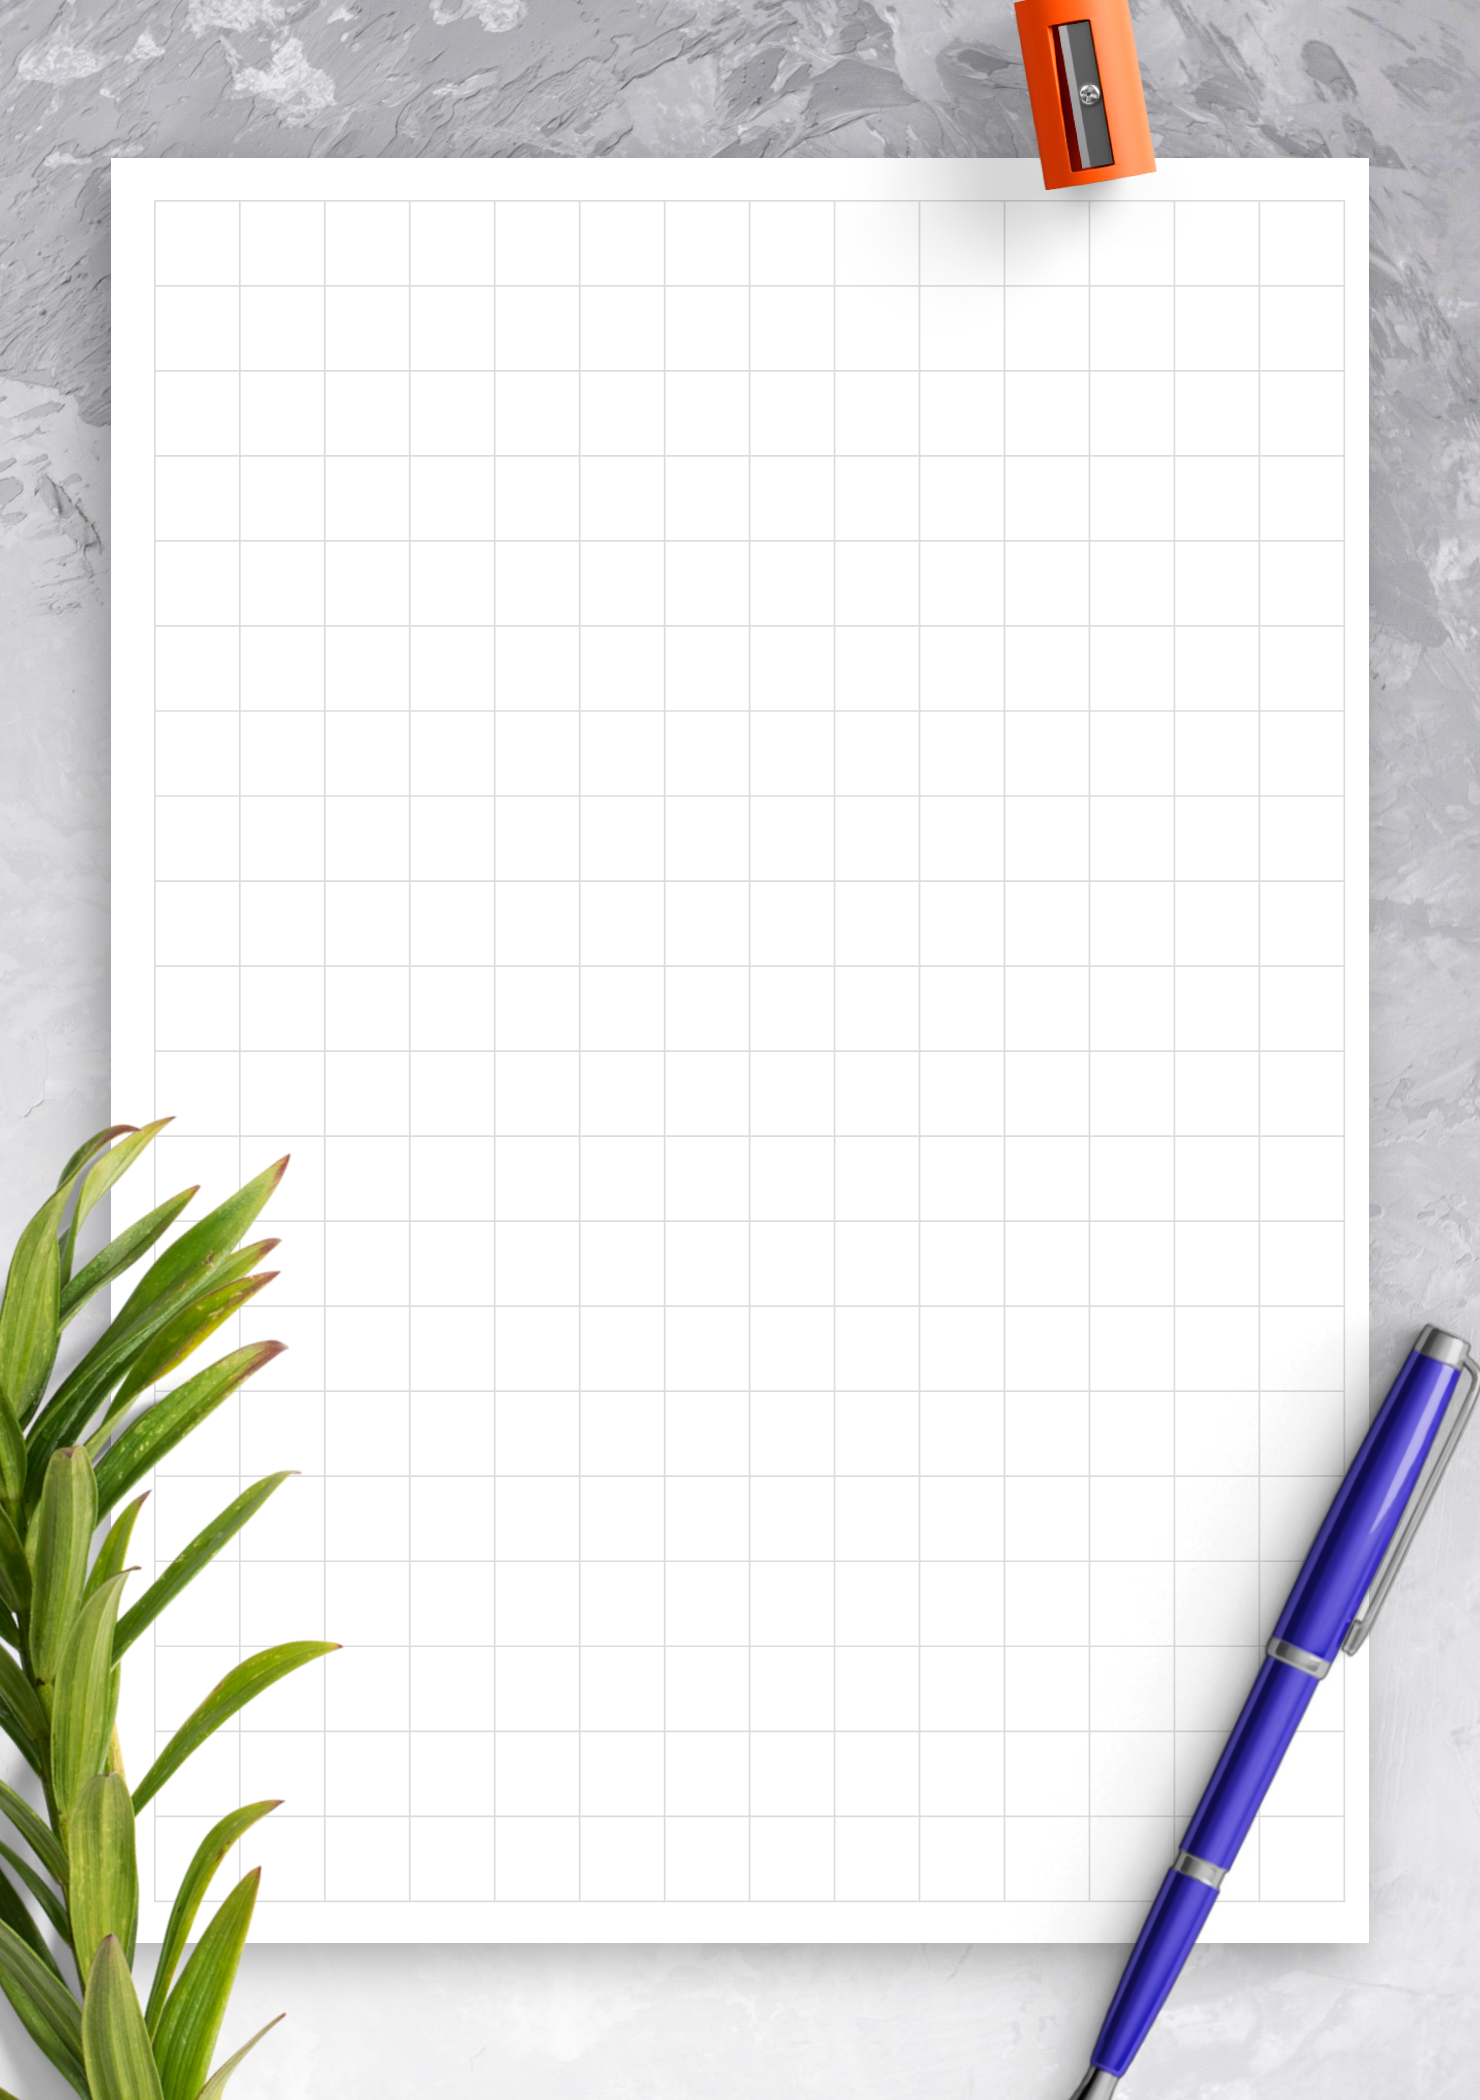 photo relating to Printable Graph Paper 1cm identify Free of charge Printable Graph Paper 1cm Sq. PDF Down load